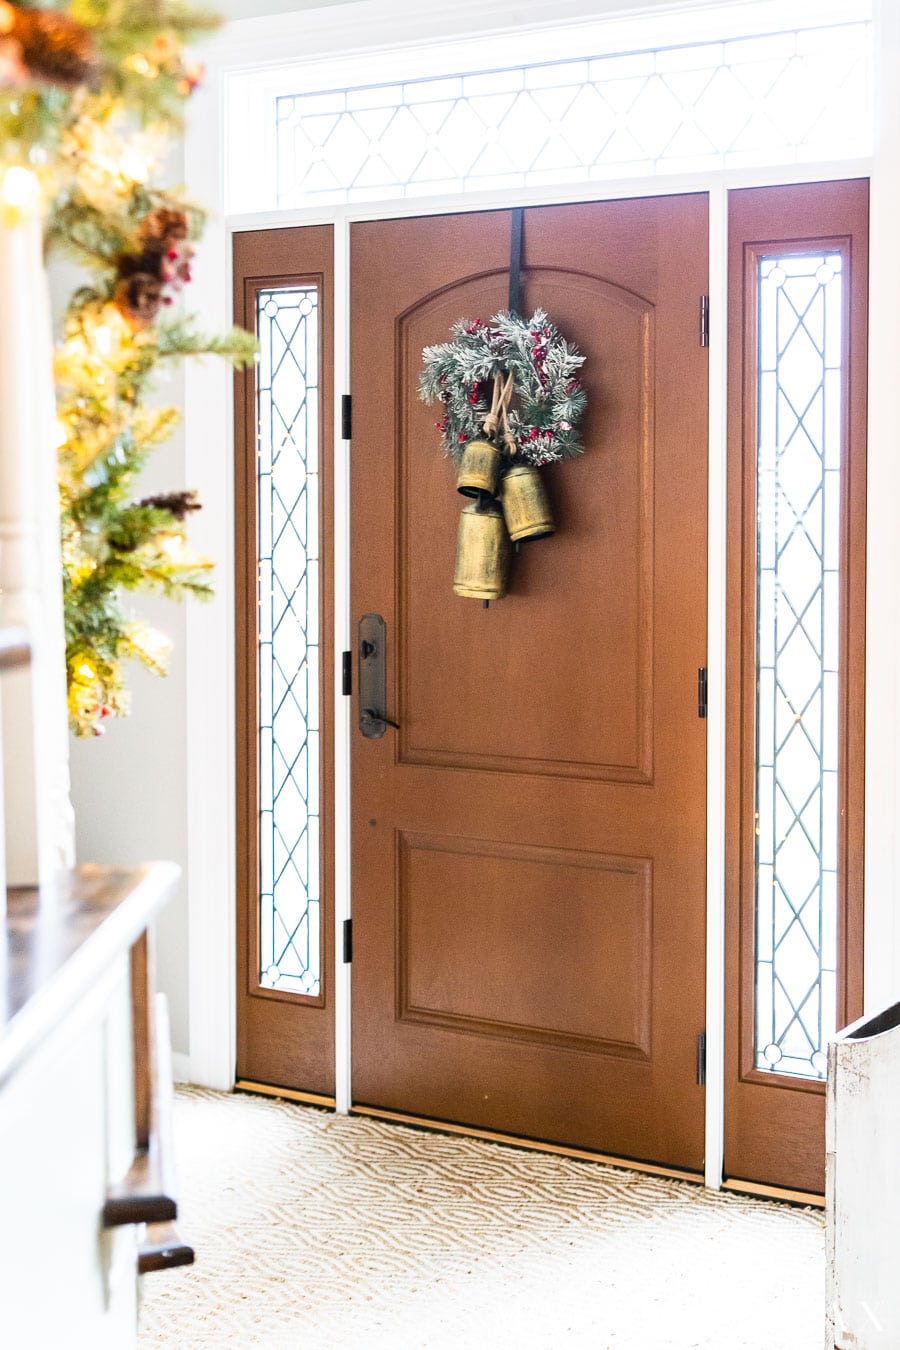 frosted wreath and gold bells on front door | Maison de Pax